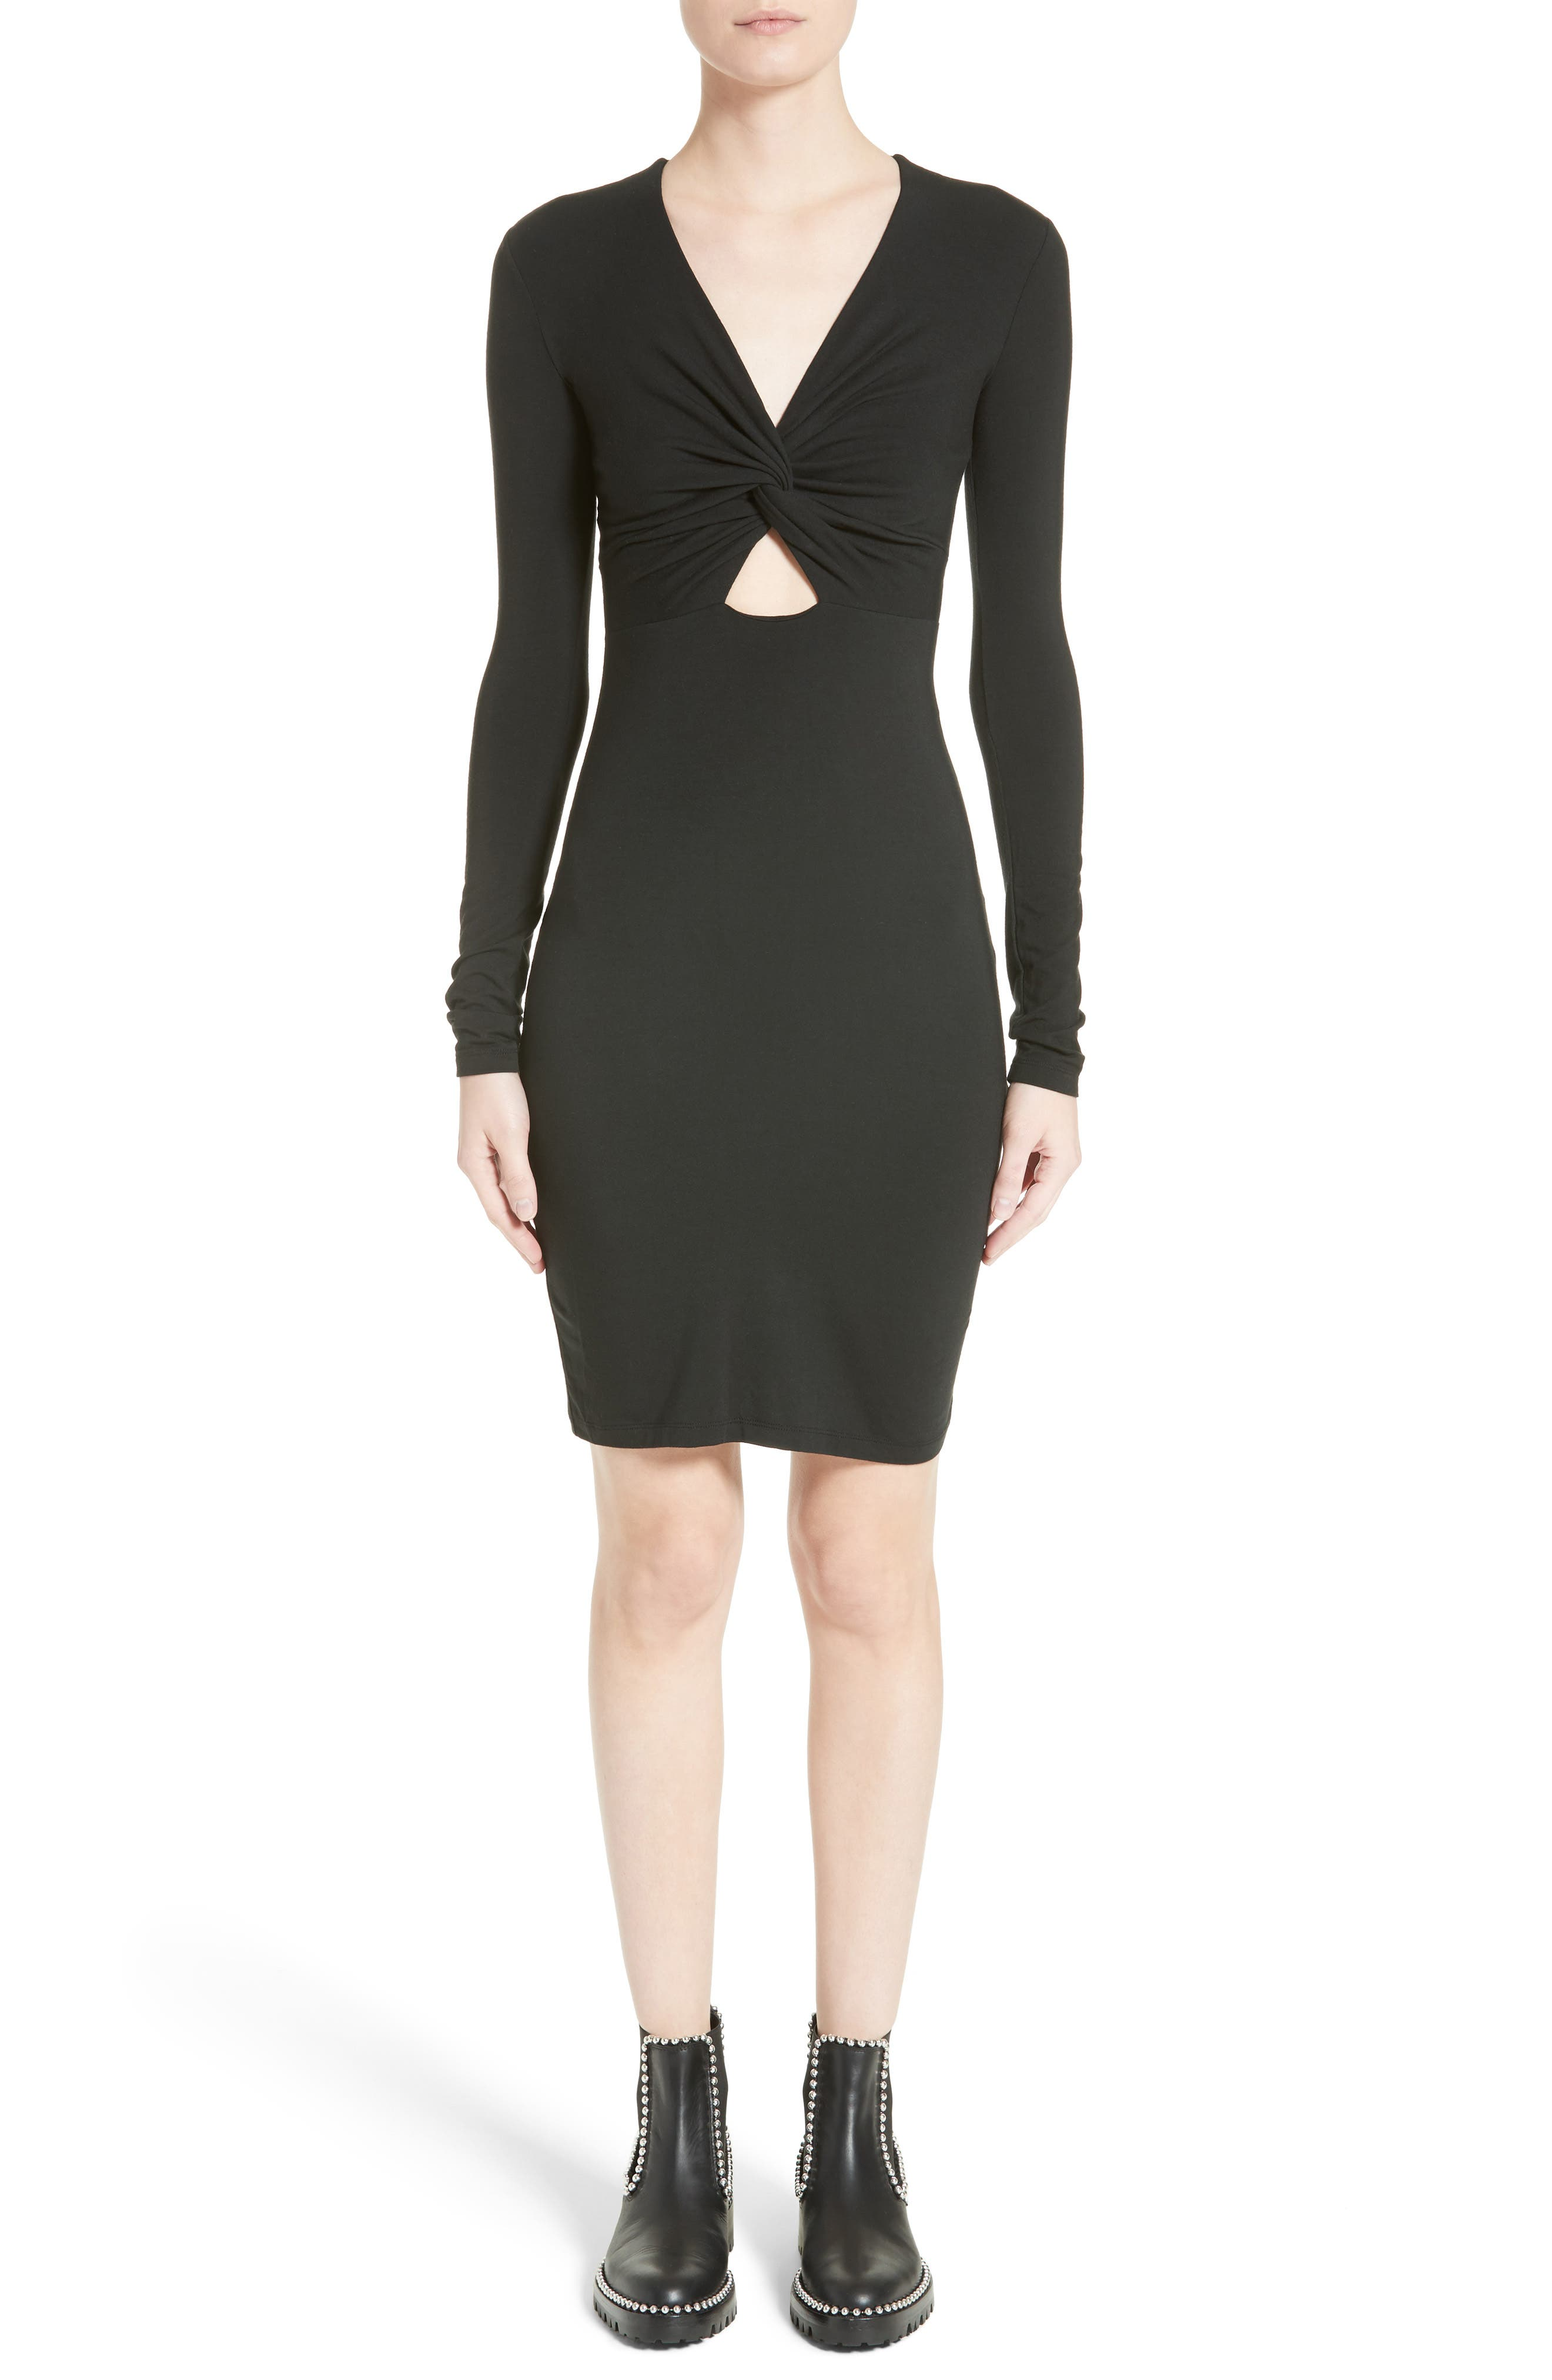 T by Alexander Wang Twist Front Body-Con Dress